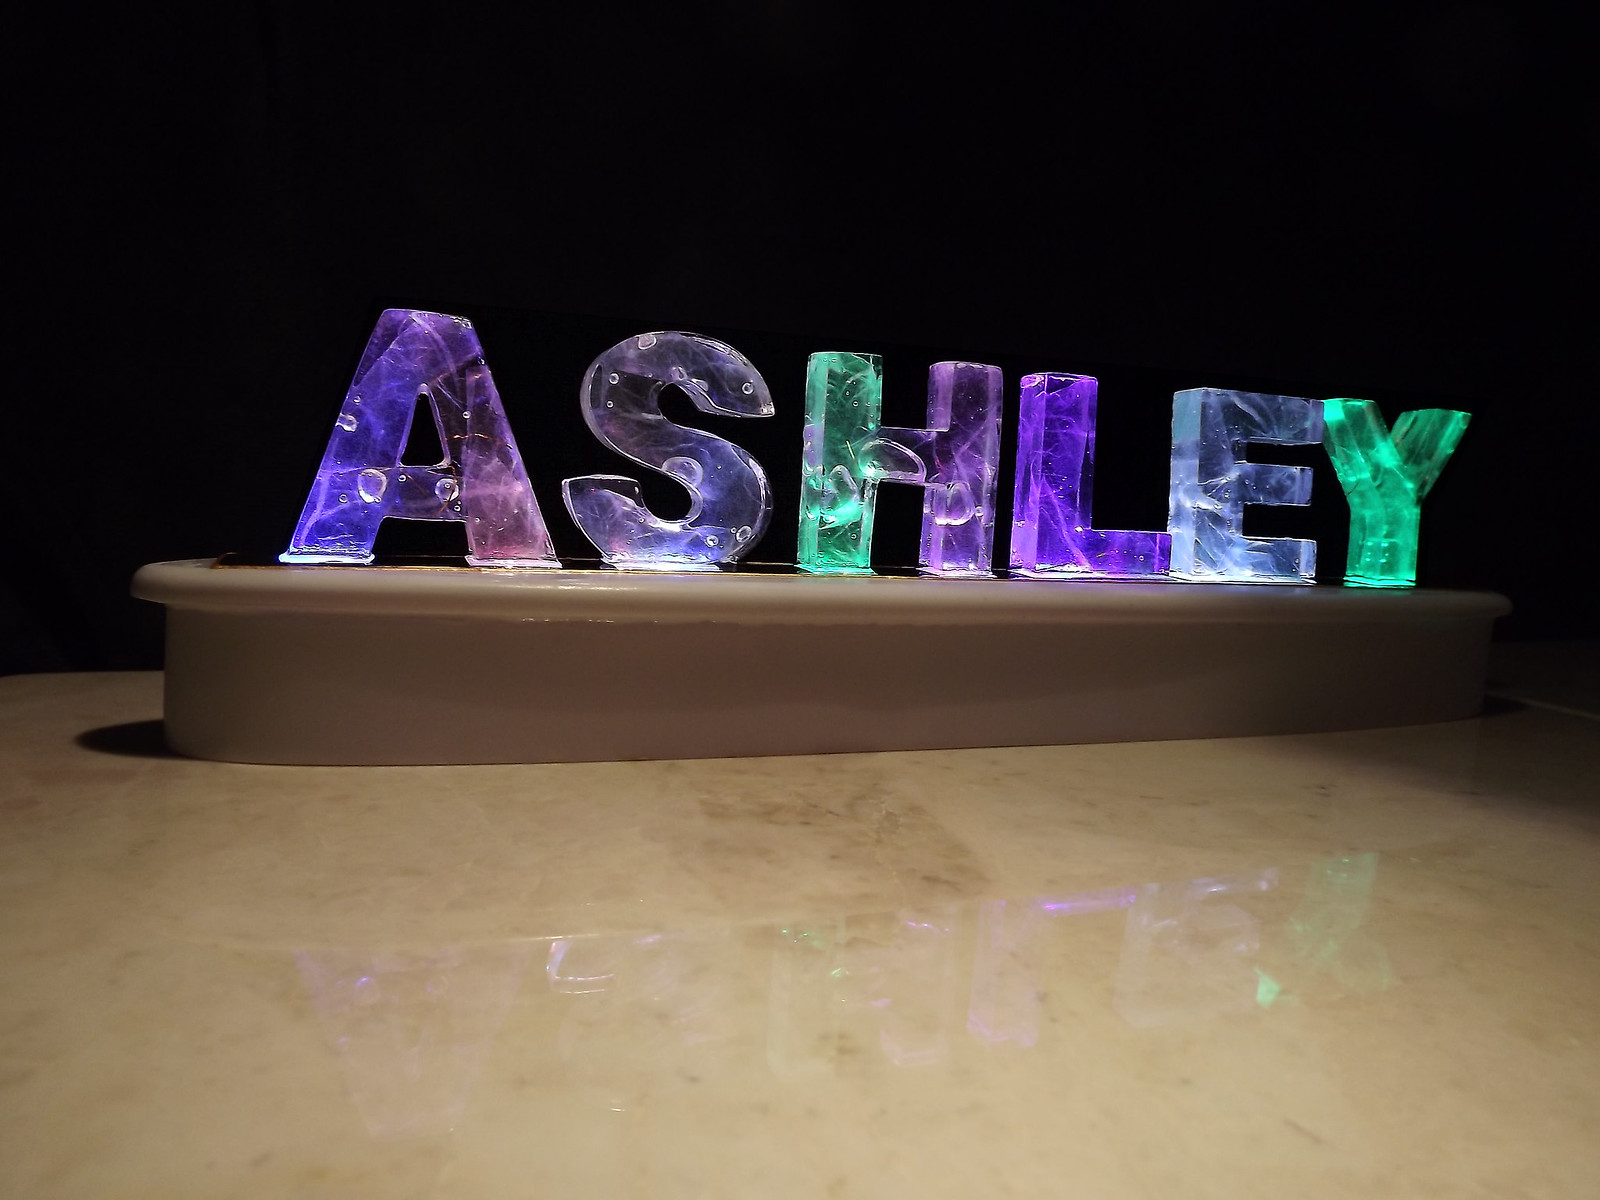 Image Gallery of Ashley Name Design Wallpaper